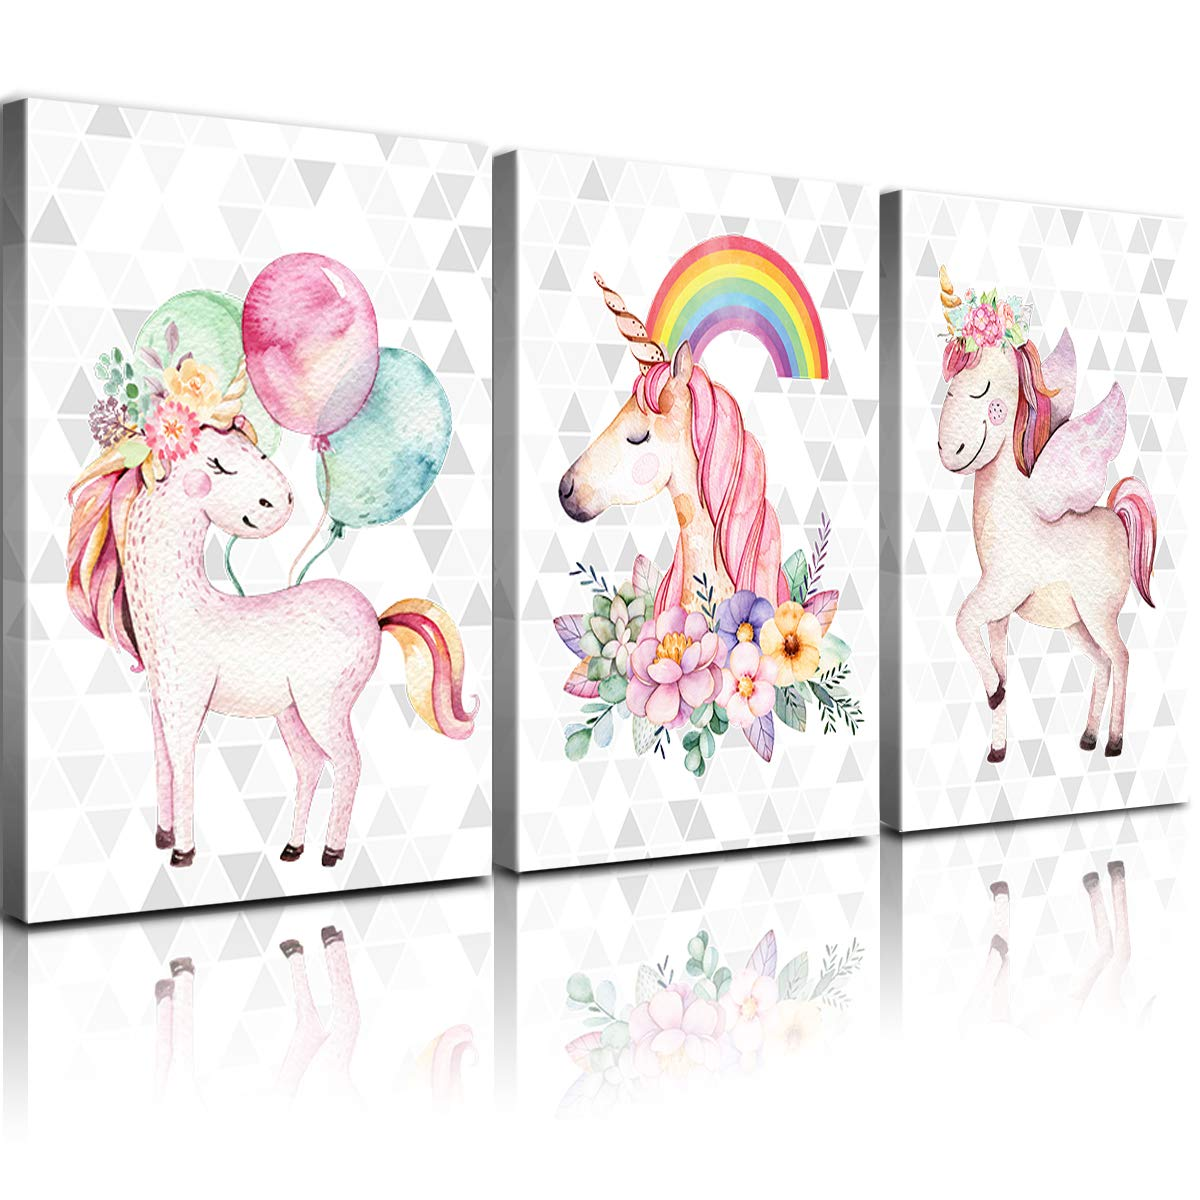 Amazon Com Yoooahu Wall Art For Kids Room Unicorns Canvas Bedroom Wall Decor Pink Rainbow Balloon Pictures Bathroom Living Room Poster Funny Cute Nursery Girls Children S Home Decoration Frame 3 Pcs 12x16 Home